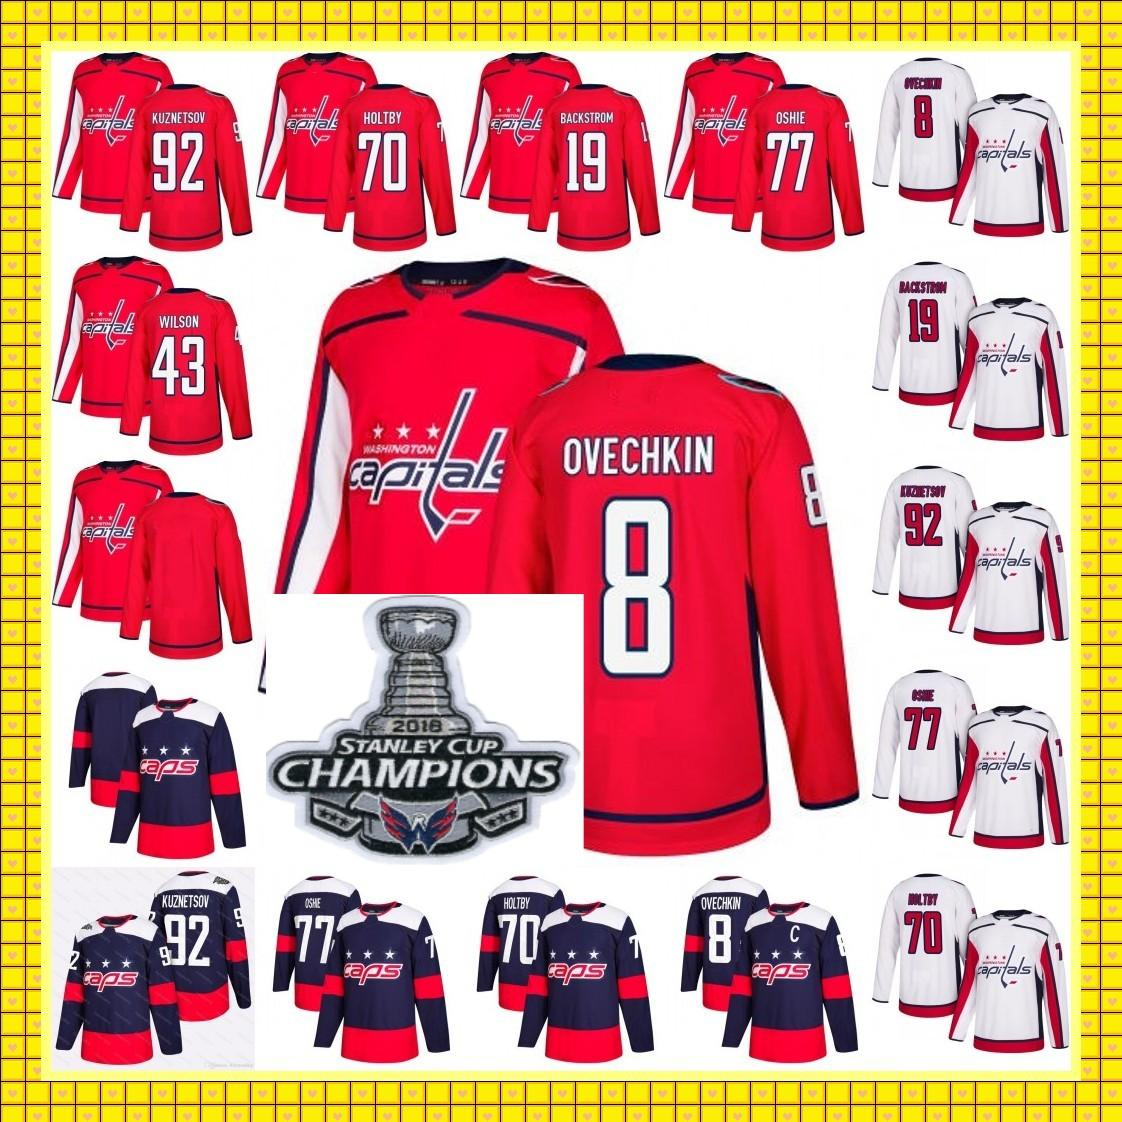 hombres jóvenes mujeres 2018 Stanley Cup Champions capitales Alex Ovechkin Tom Wilson T. J. Nicklas OSHIE